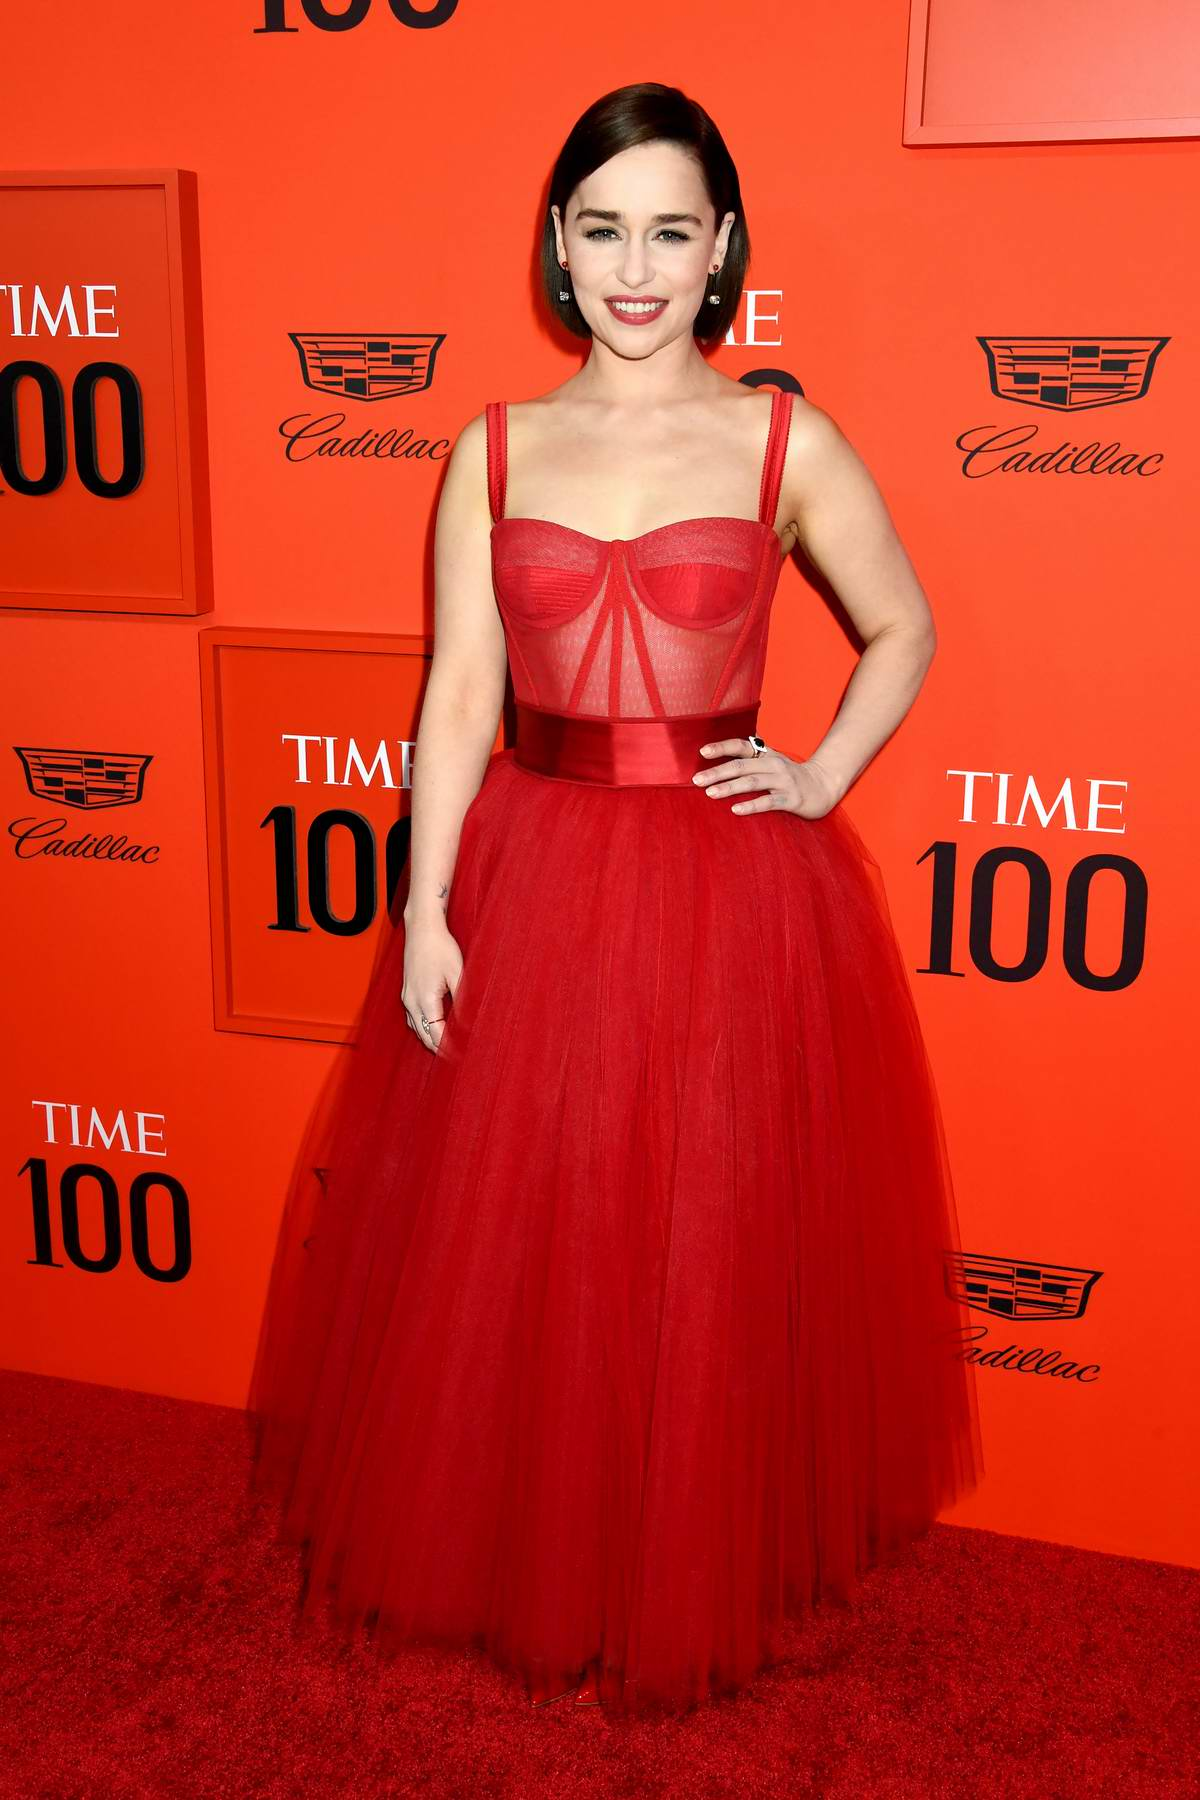 Emilia Clarke attends the TIME 100 Gala 2019 at Jazz at Lincoln Center in New York City